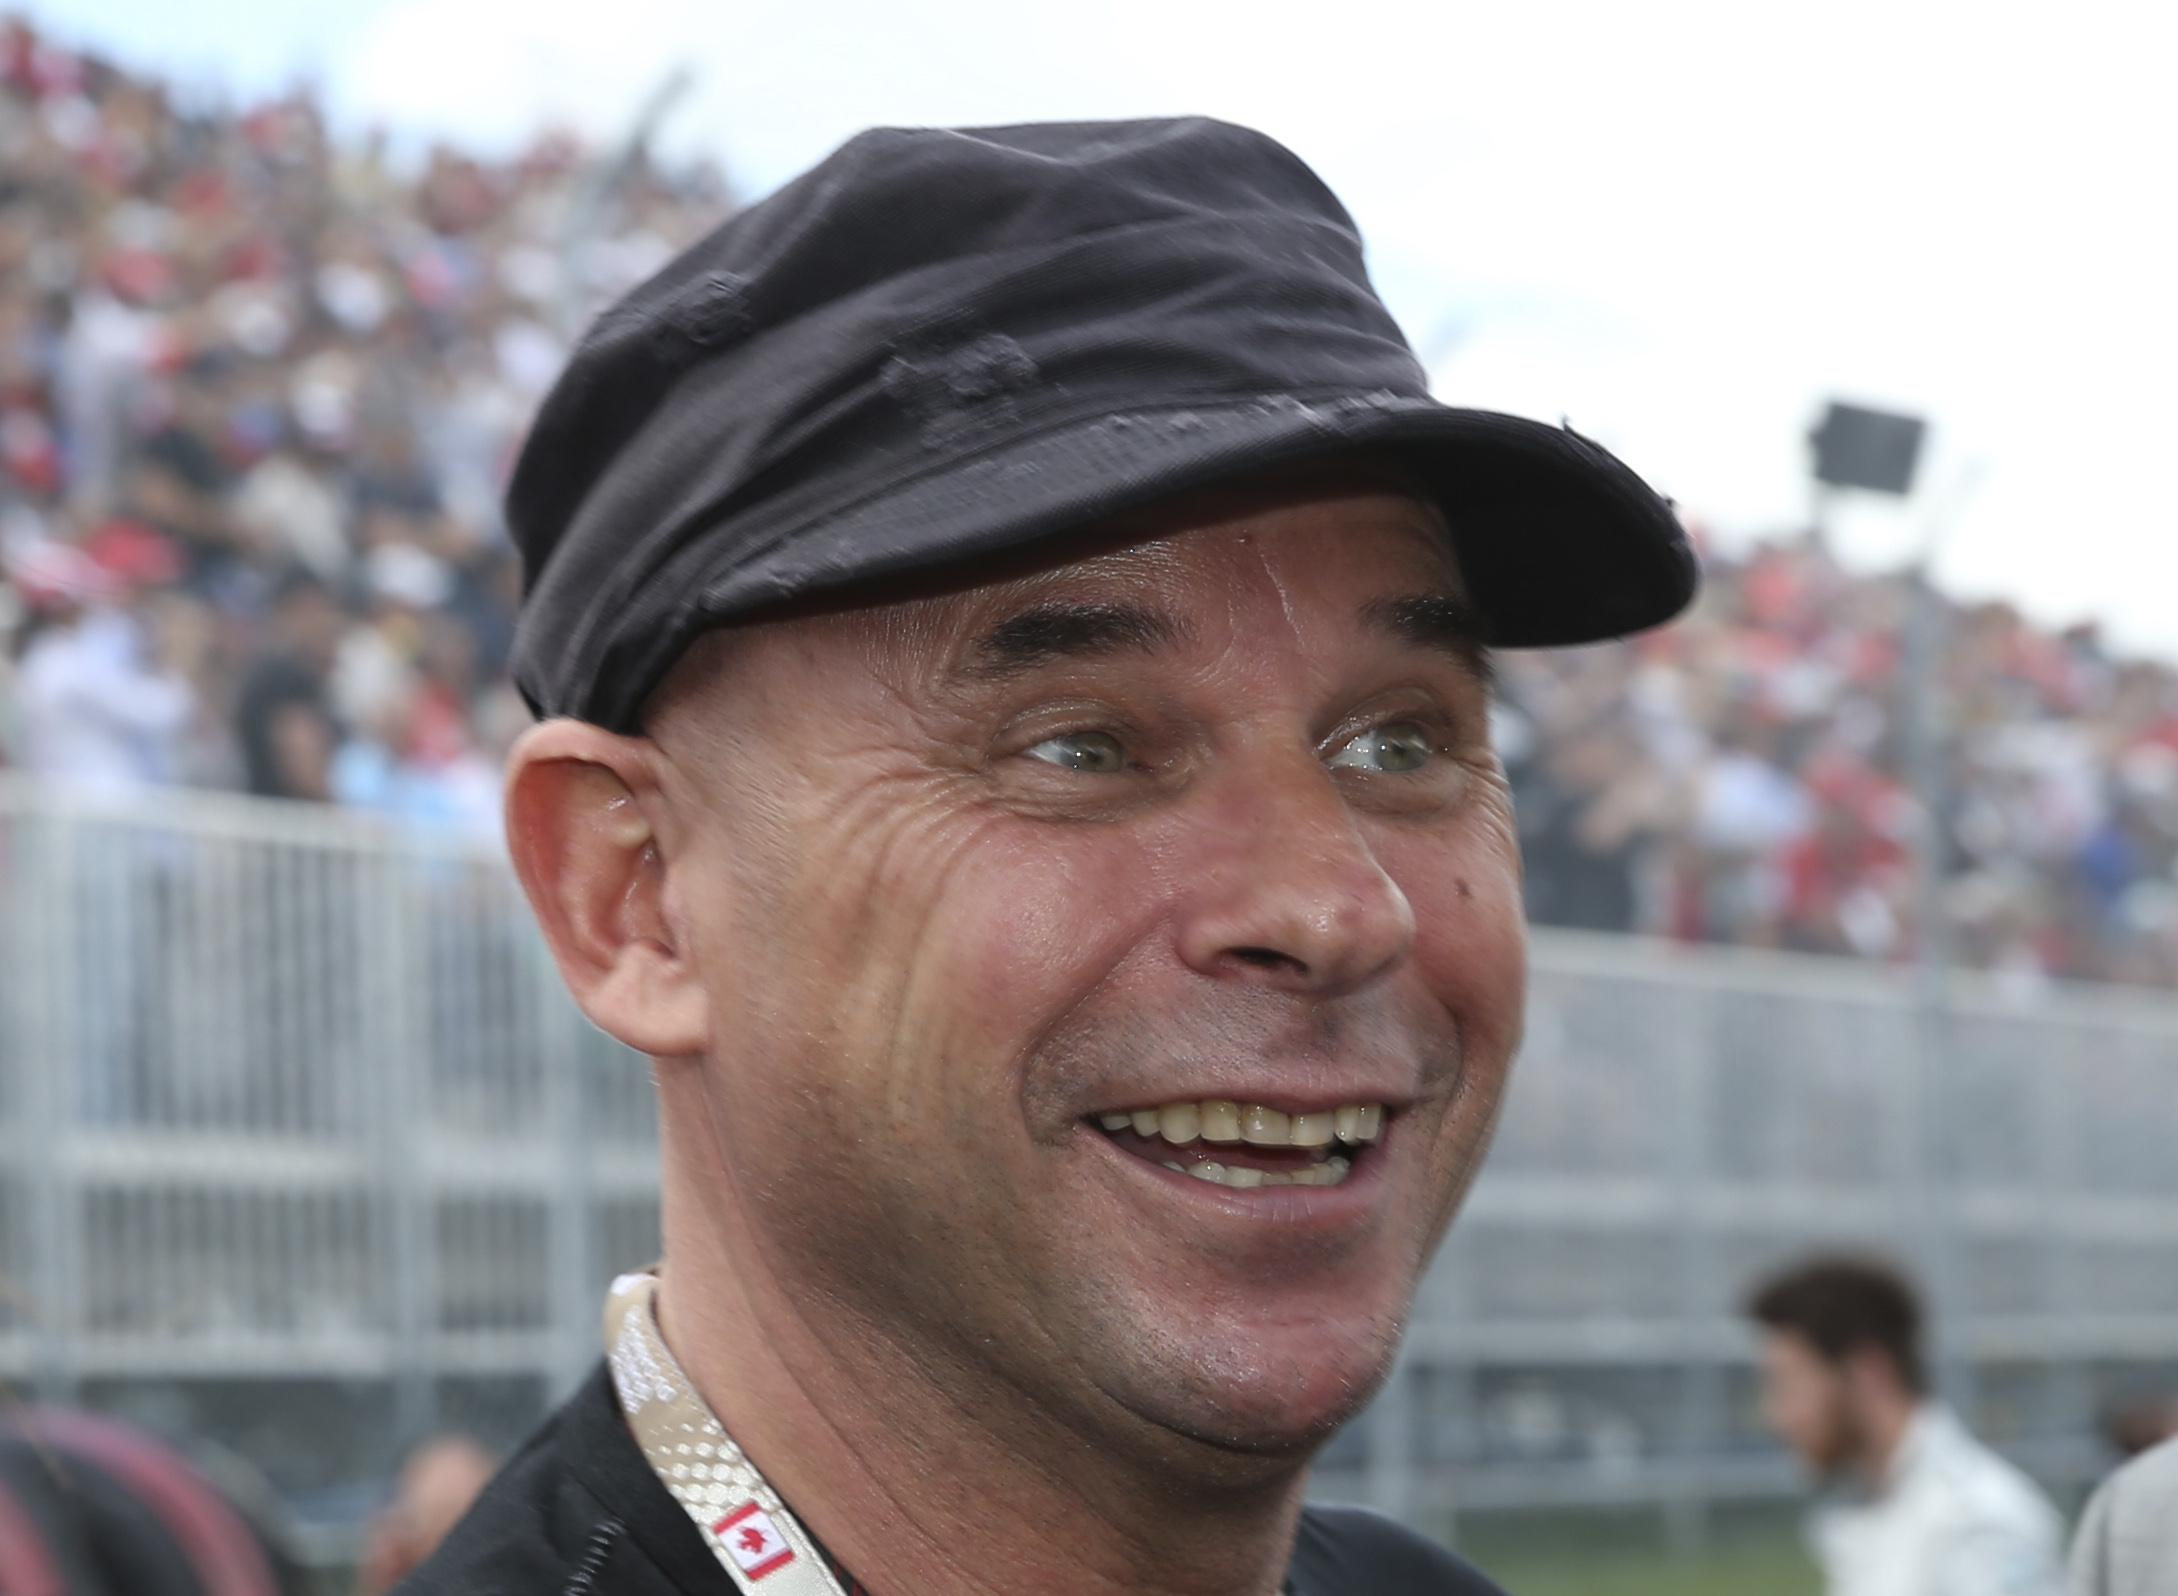 Guy Laliberté, founder of the 'Cirque du Soleil,' is a Canadian billionaire. Here he watches Formula One's Canadian Grand Prix in Montreal on June 9, 2013. (AP Photo/Luca Bruno)